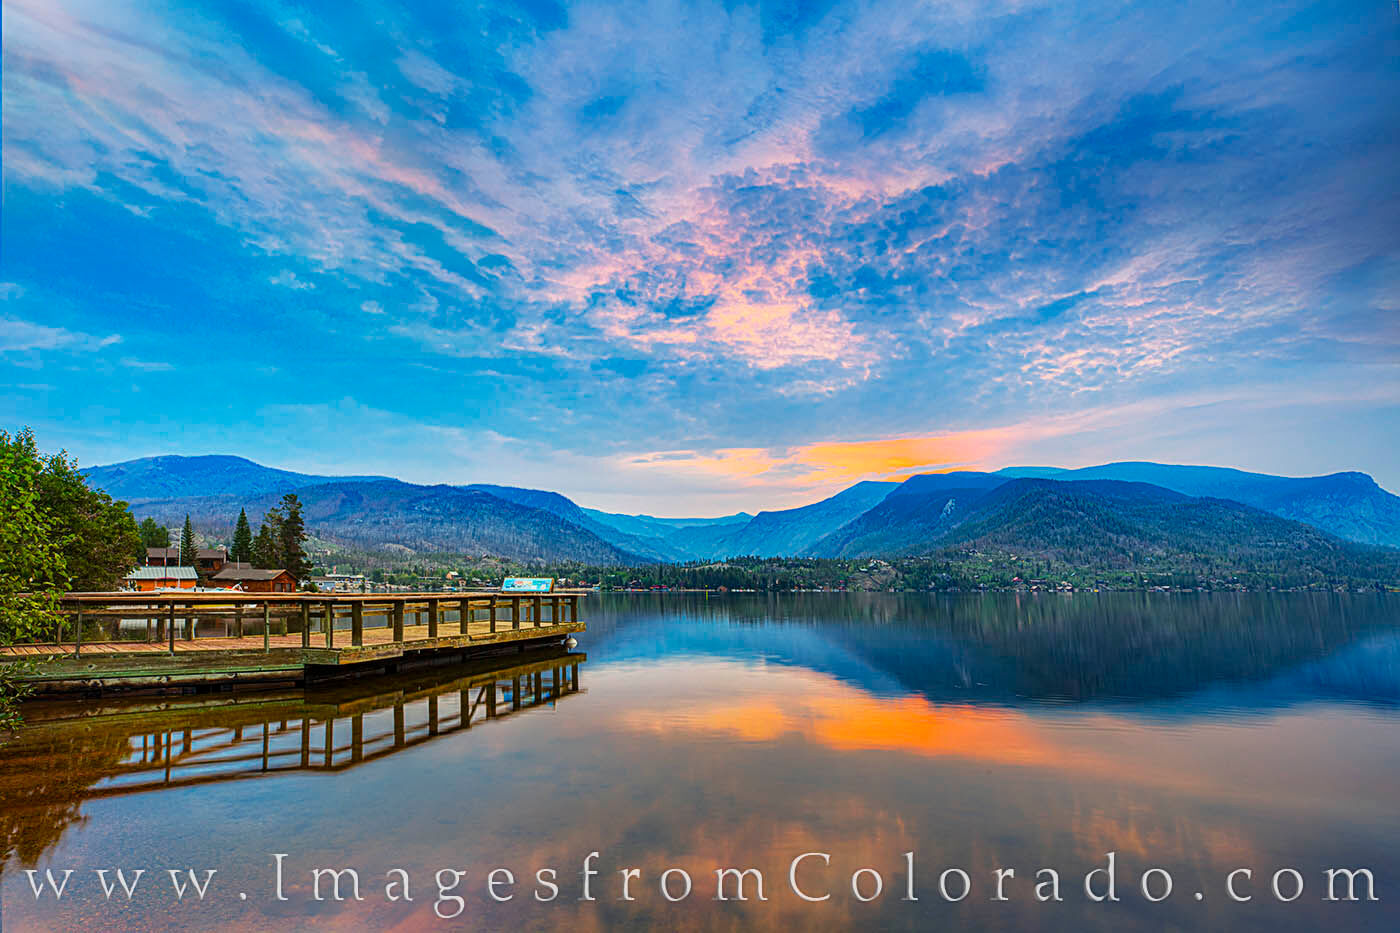 On a quiet morning in Grand Lake, Colorado, the quiet lake begins to brighten up as first light spreads across the still waters...